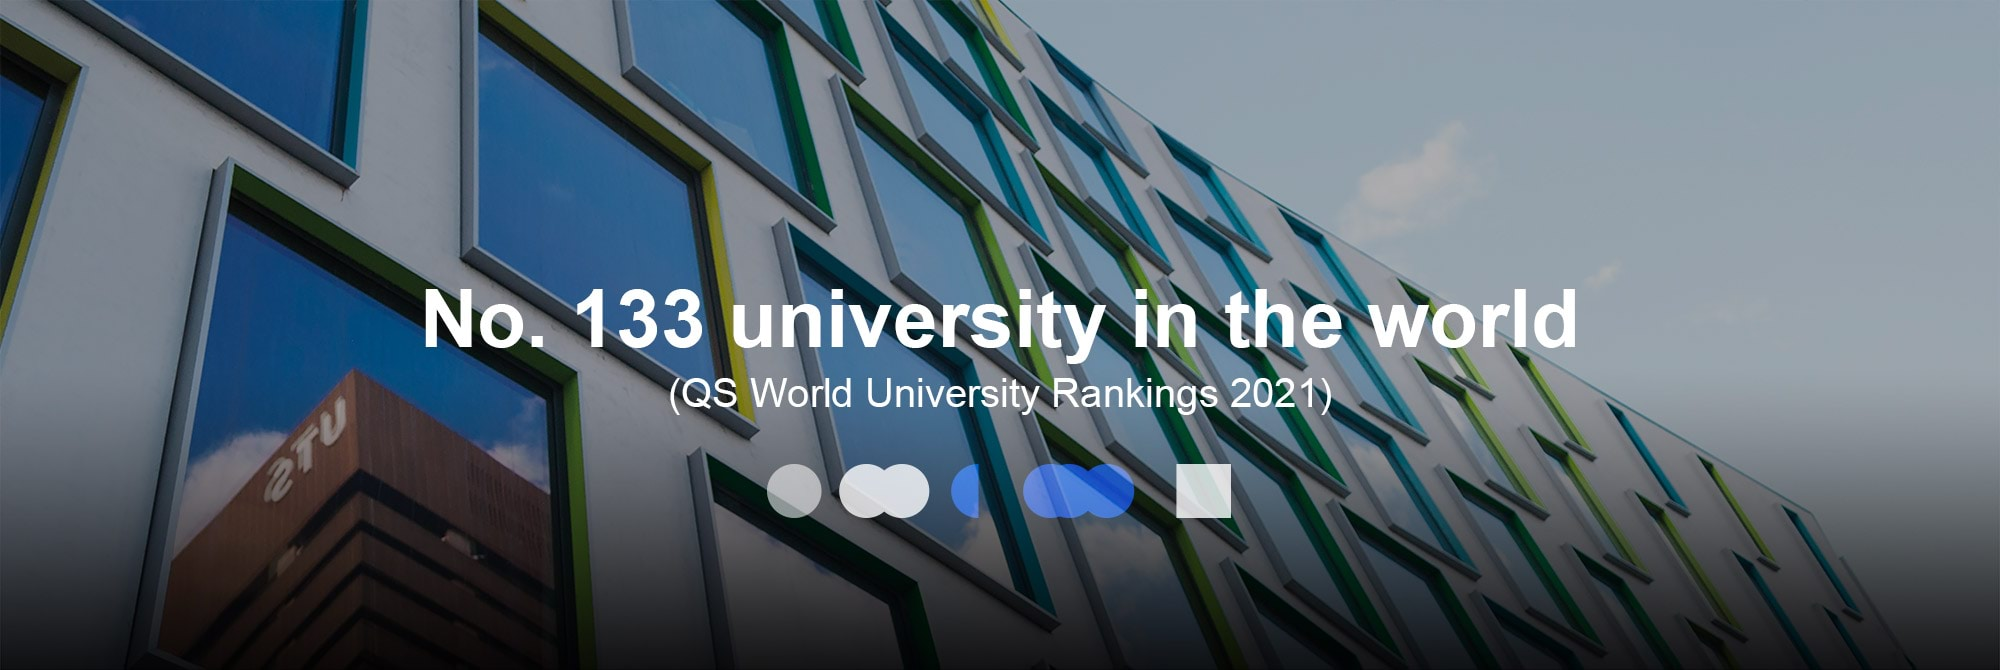 No. 133 university in the world